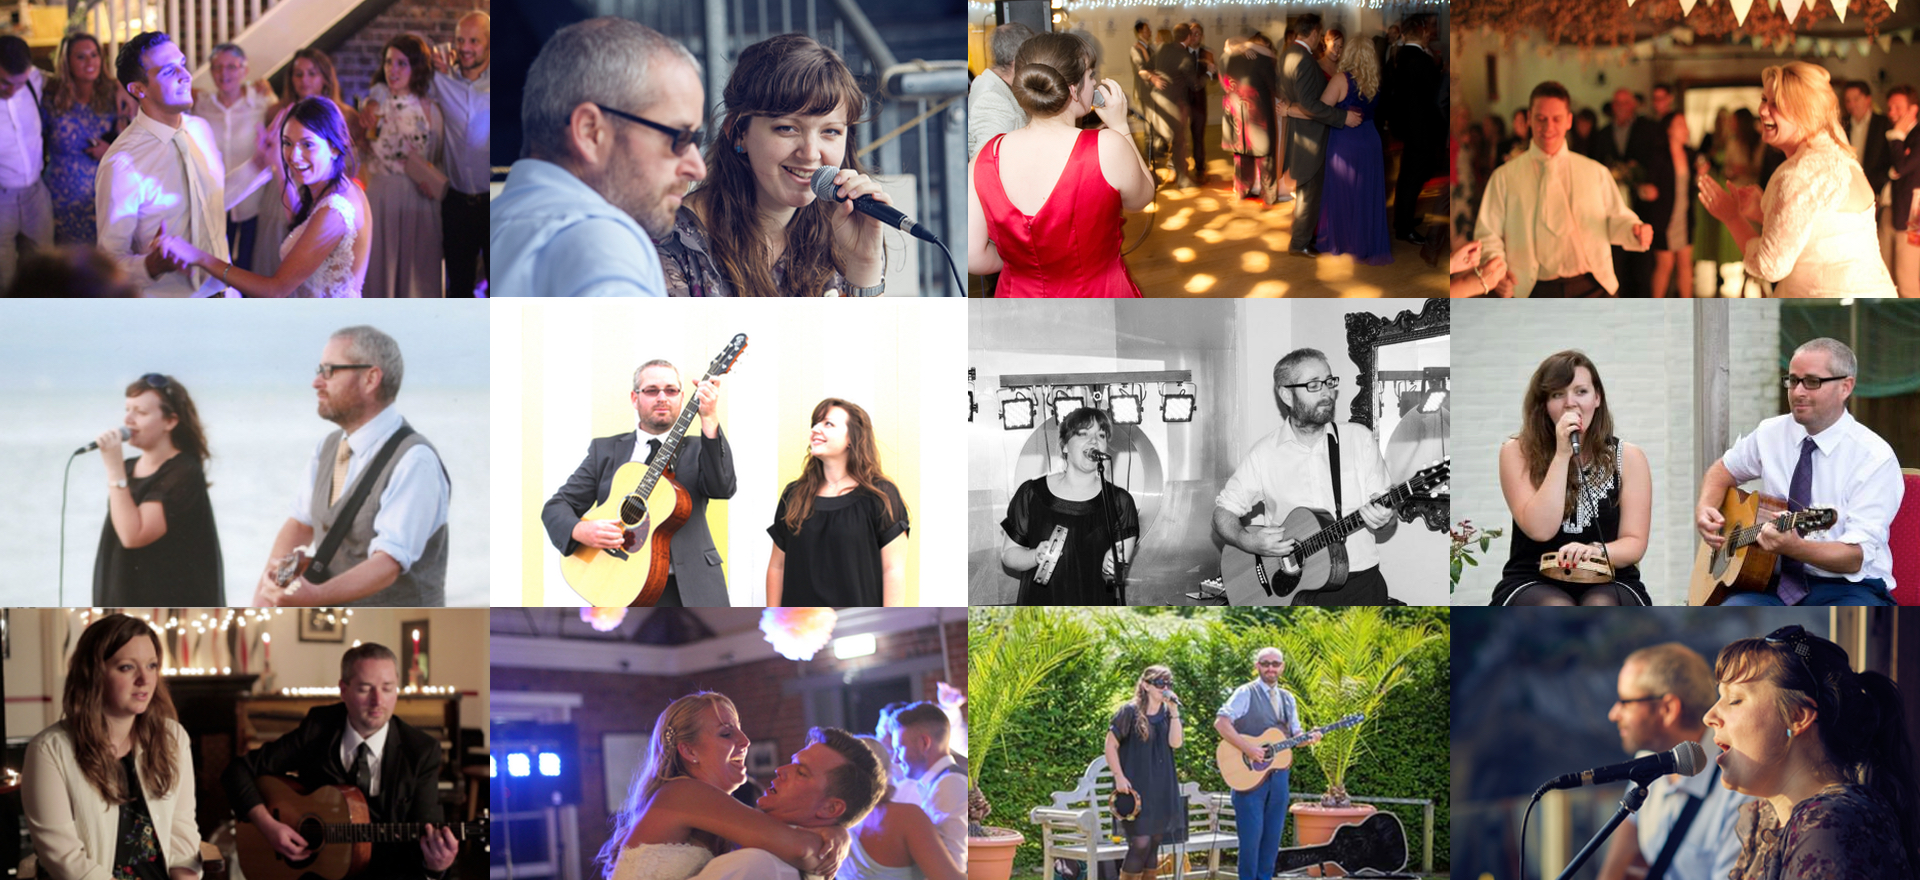 My acoustic duo, Herbie Duo, playing weddings and events across the UK!